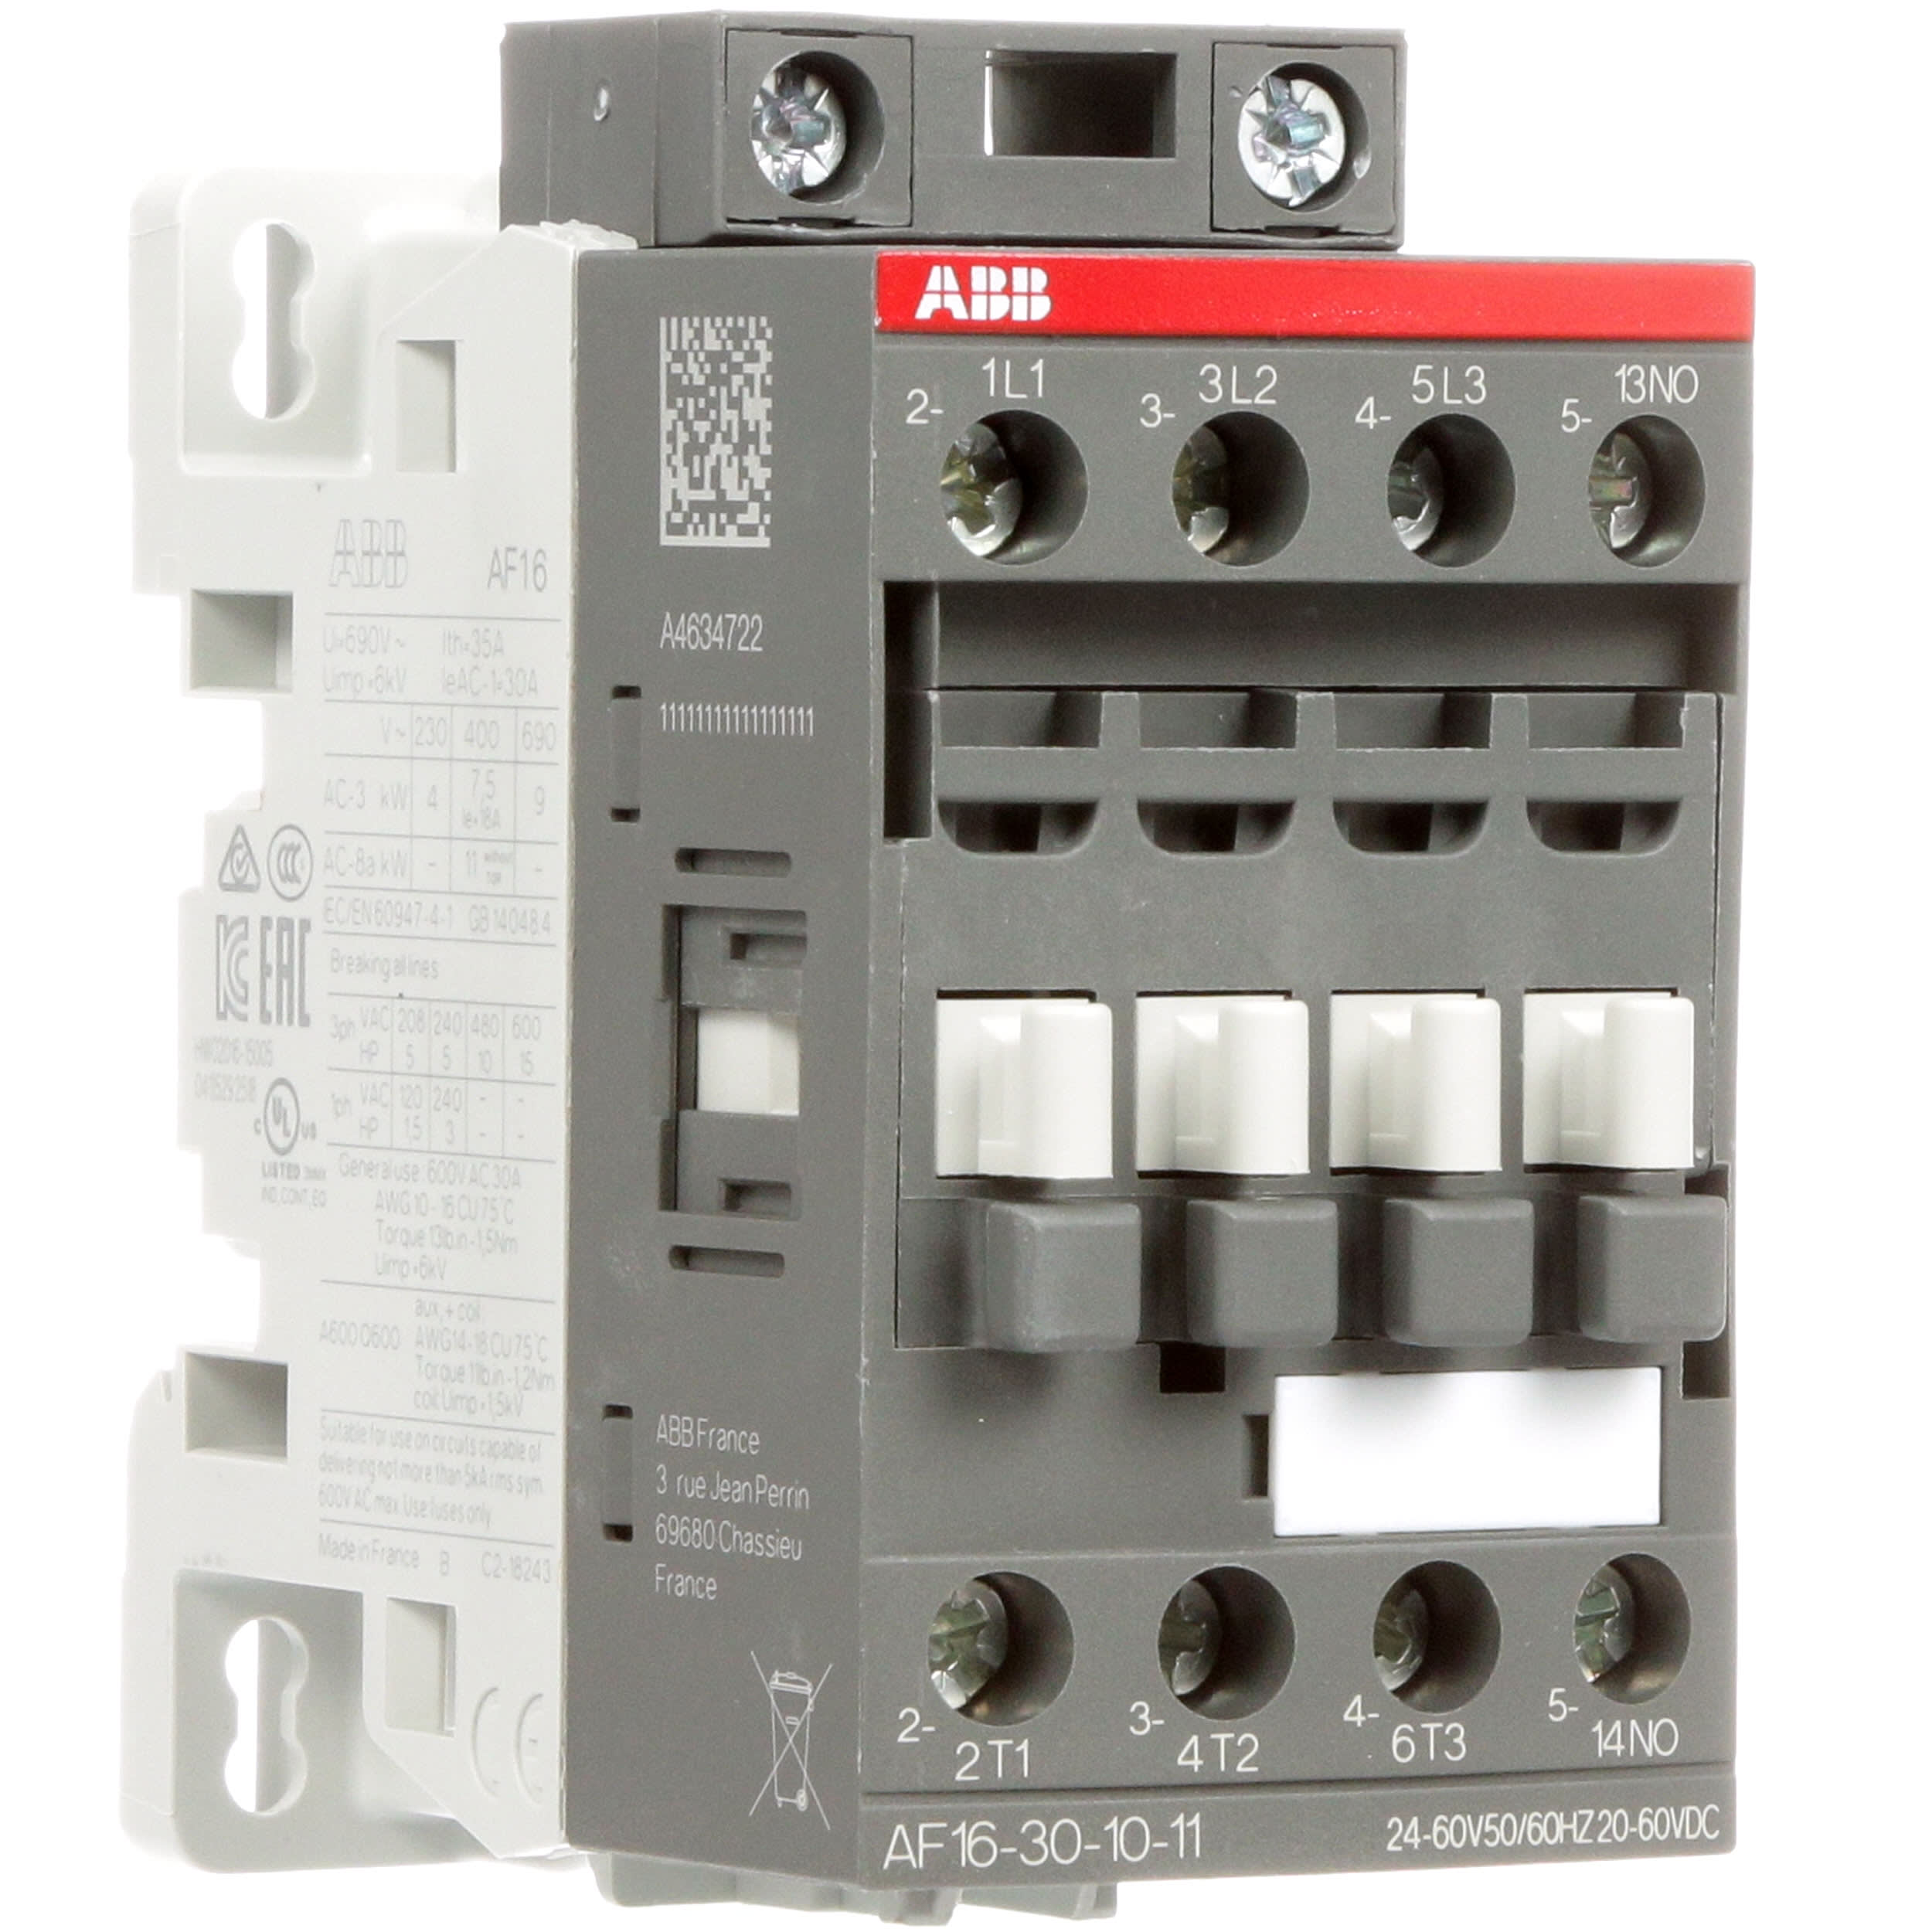 [SODI_2457]   ABB - AF16-30-10-11 - AF16 3 Pole Contactor; 30 A; 7.5 kW; 20to 60 V dc; 24  to 60 V ac Coil - Allied Electronics & Automation | Abb 145 30 Contactor Wiring Diagram |  | Allied Electronics